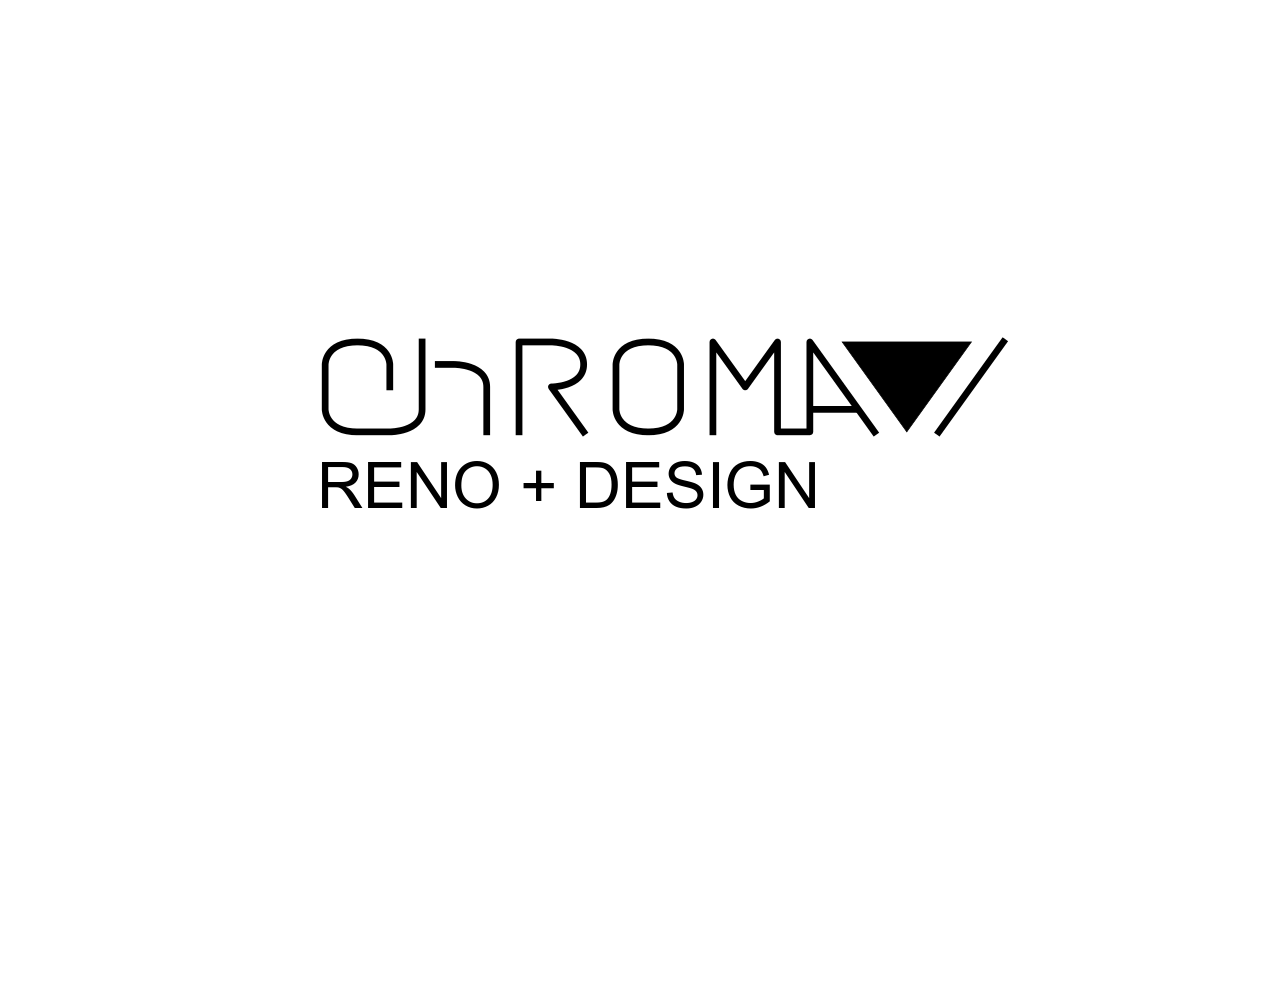 Logo Design by JaroslavProcka - Entry No. 315 in the Logo Design Contest Inspiring Logo Design for Chroma Reno+Design.